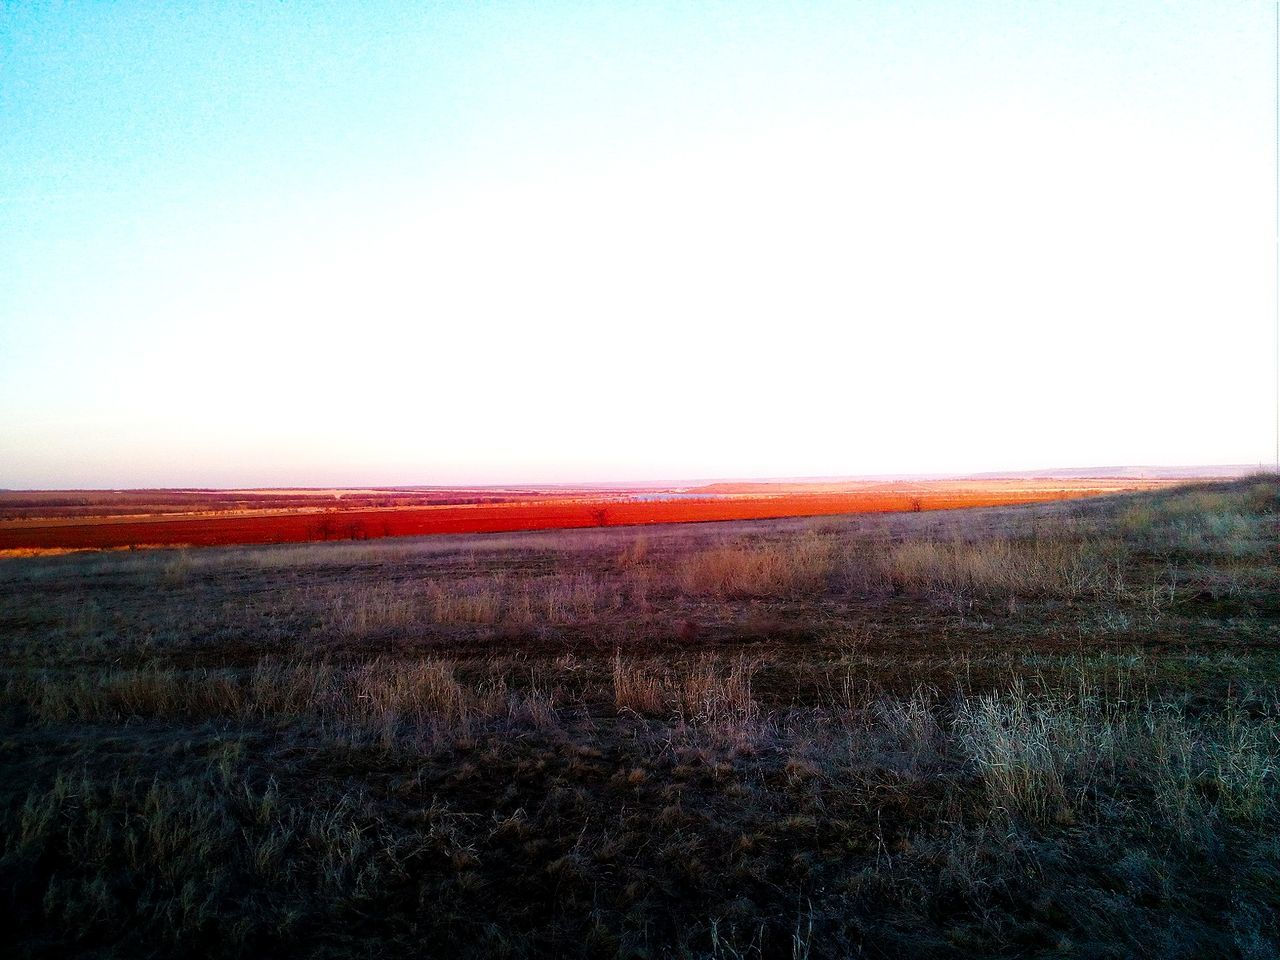 landscape, field, nature, grass, tranquility, outdoors, beauty in nature, scenics, no people, tranquil scene, clear sky, sky, horizon over land, sunset, day, winter, cold temperature, rural scene, dawn